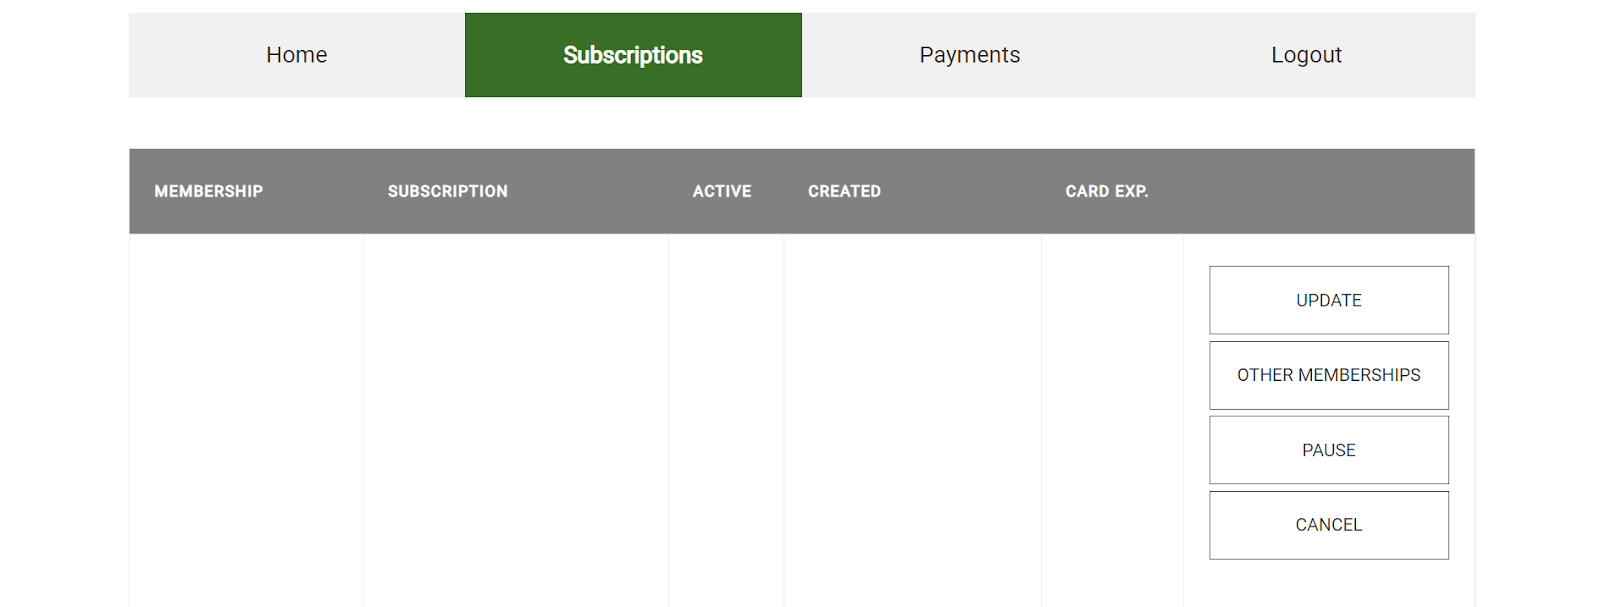 screenshot of the subscriptions area of your account